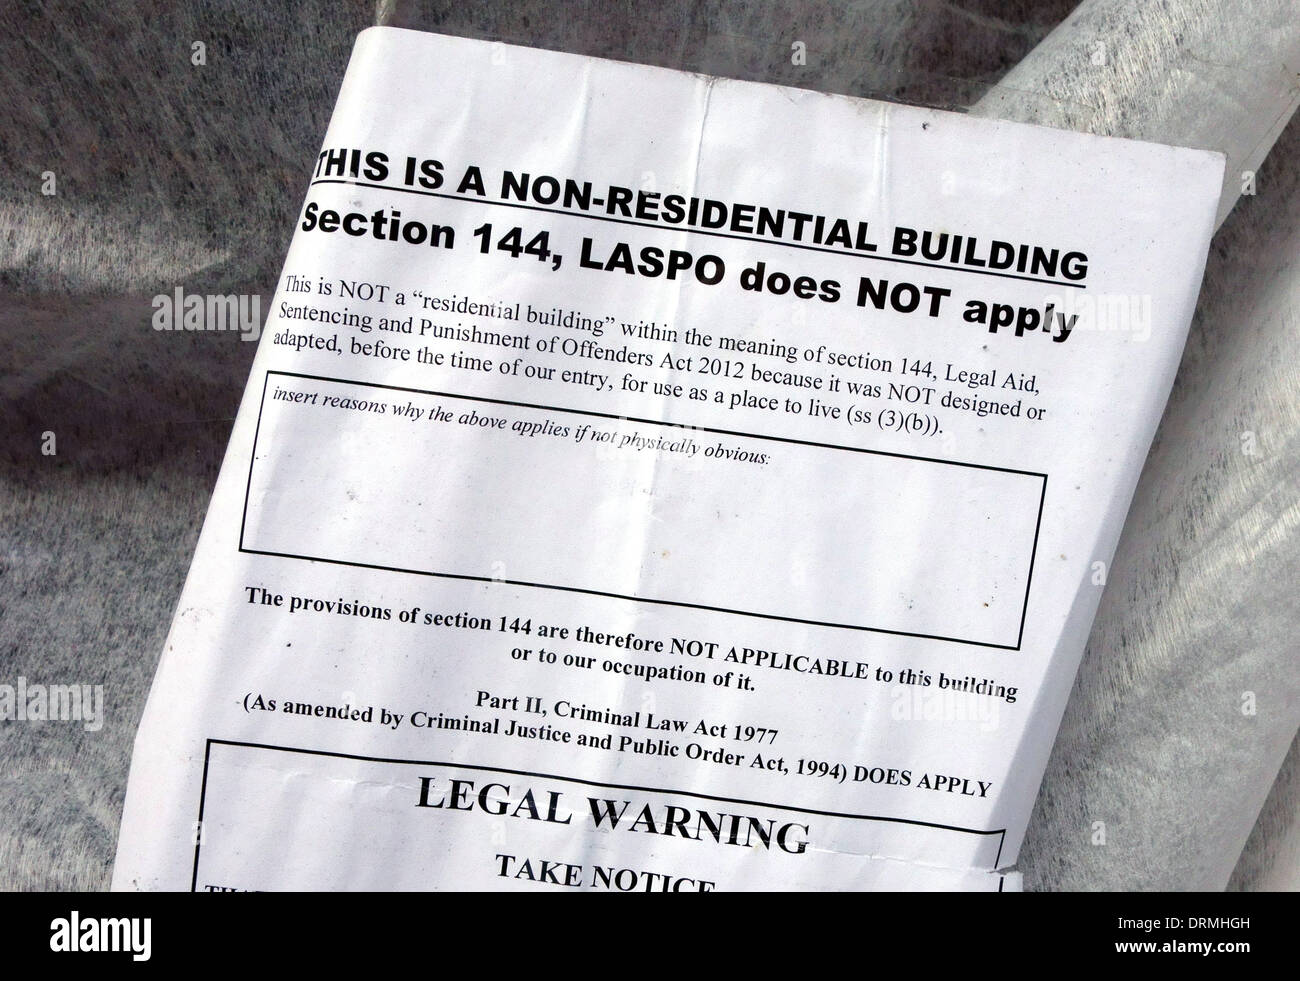 Legal notice in window of squat in non-residential building, London: anti-squatting law does not apply to commercial premises - Stock Image